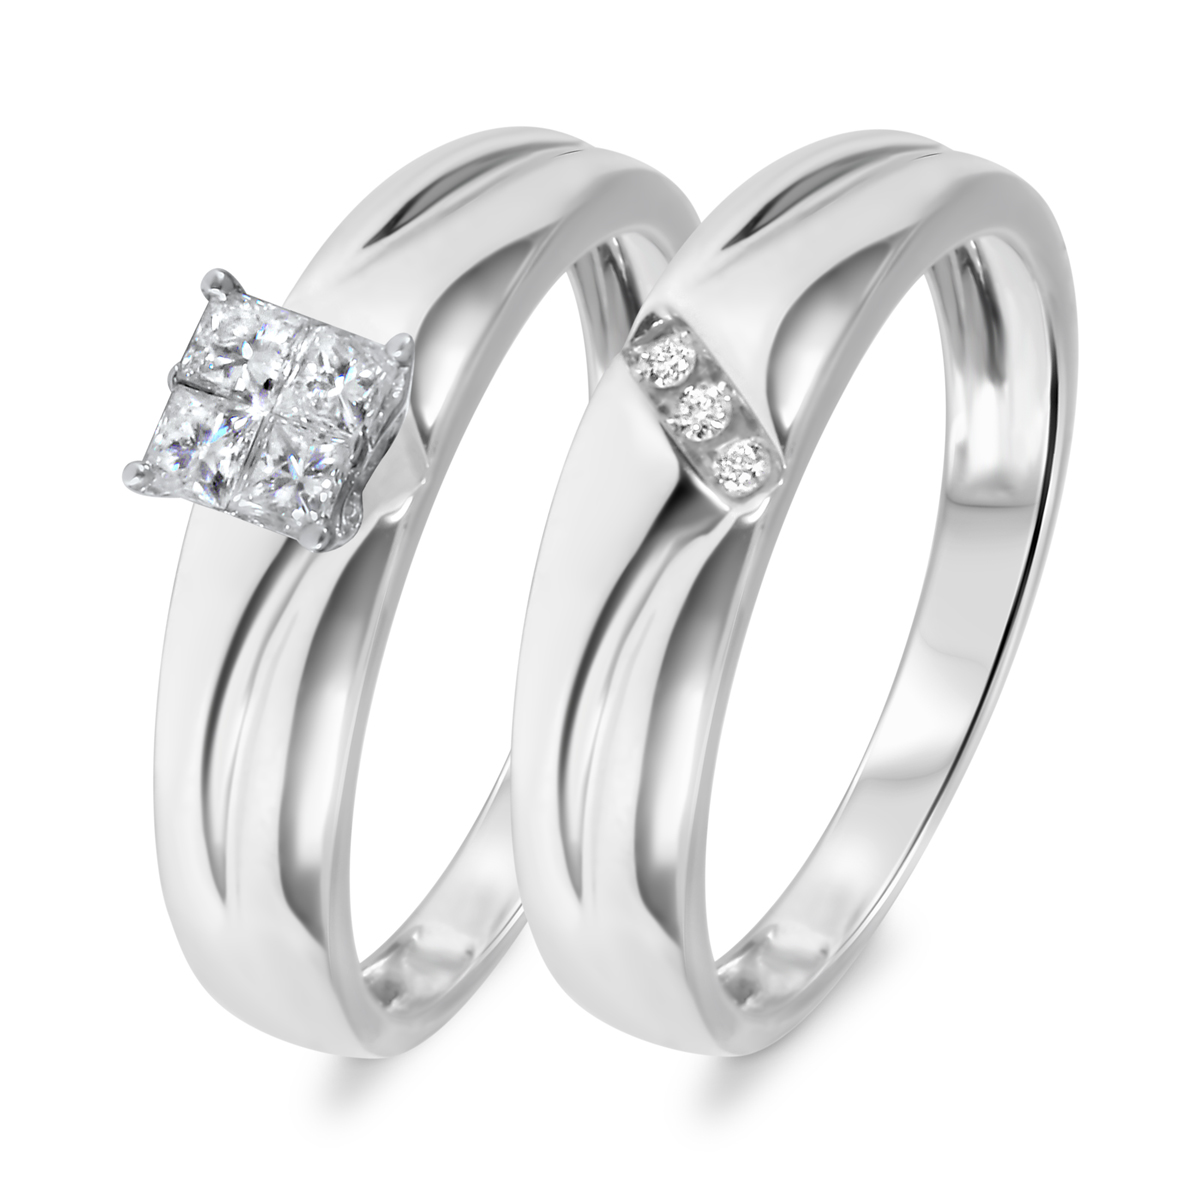 1/4 CT. T.W. Diamond Women's Bridal Wedding Ring Set 10K White Gold